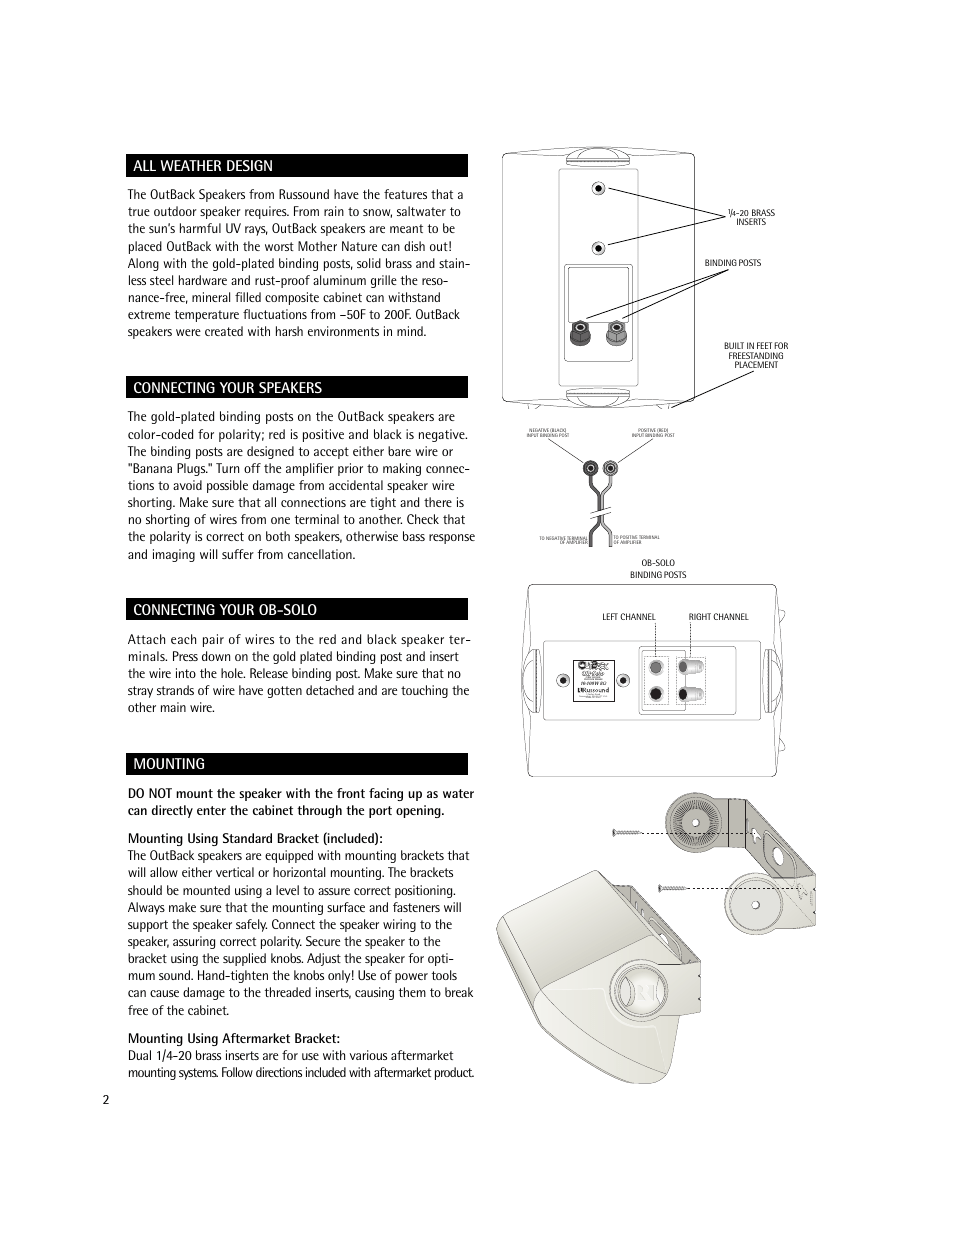 All weather design, Connecting your speakers, Connecting